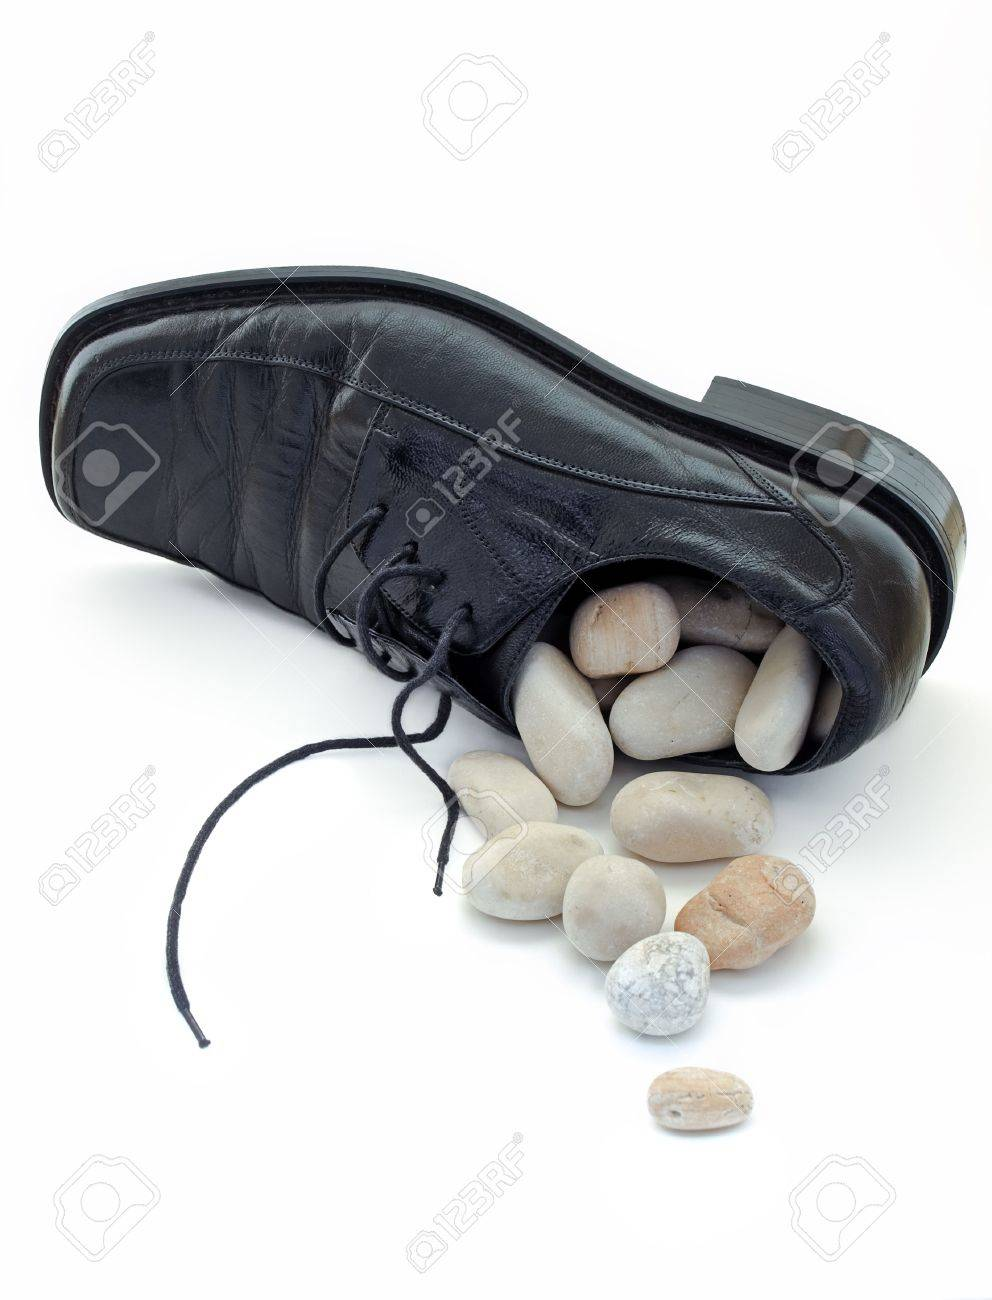 Metaphor about problems like  small stone at the bottom of shoe.What to do when it is full, and they are no longer small Stock Photo - 4621435